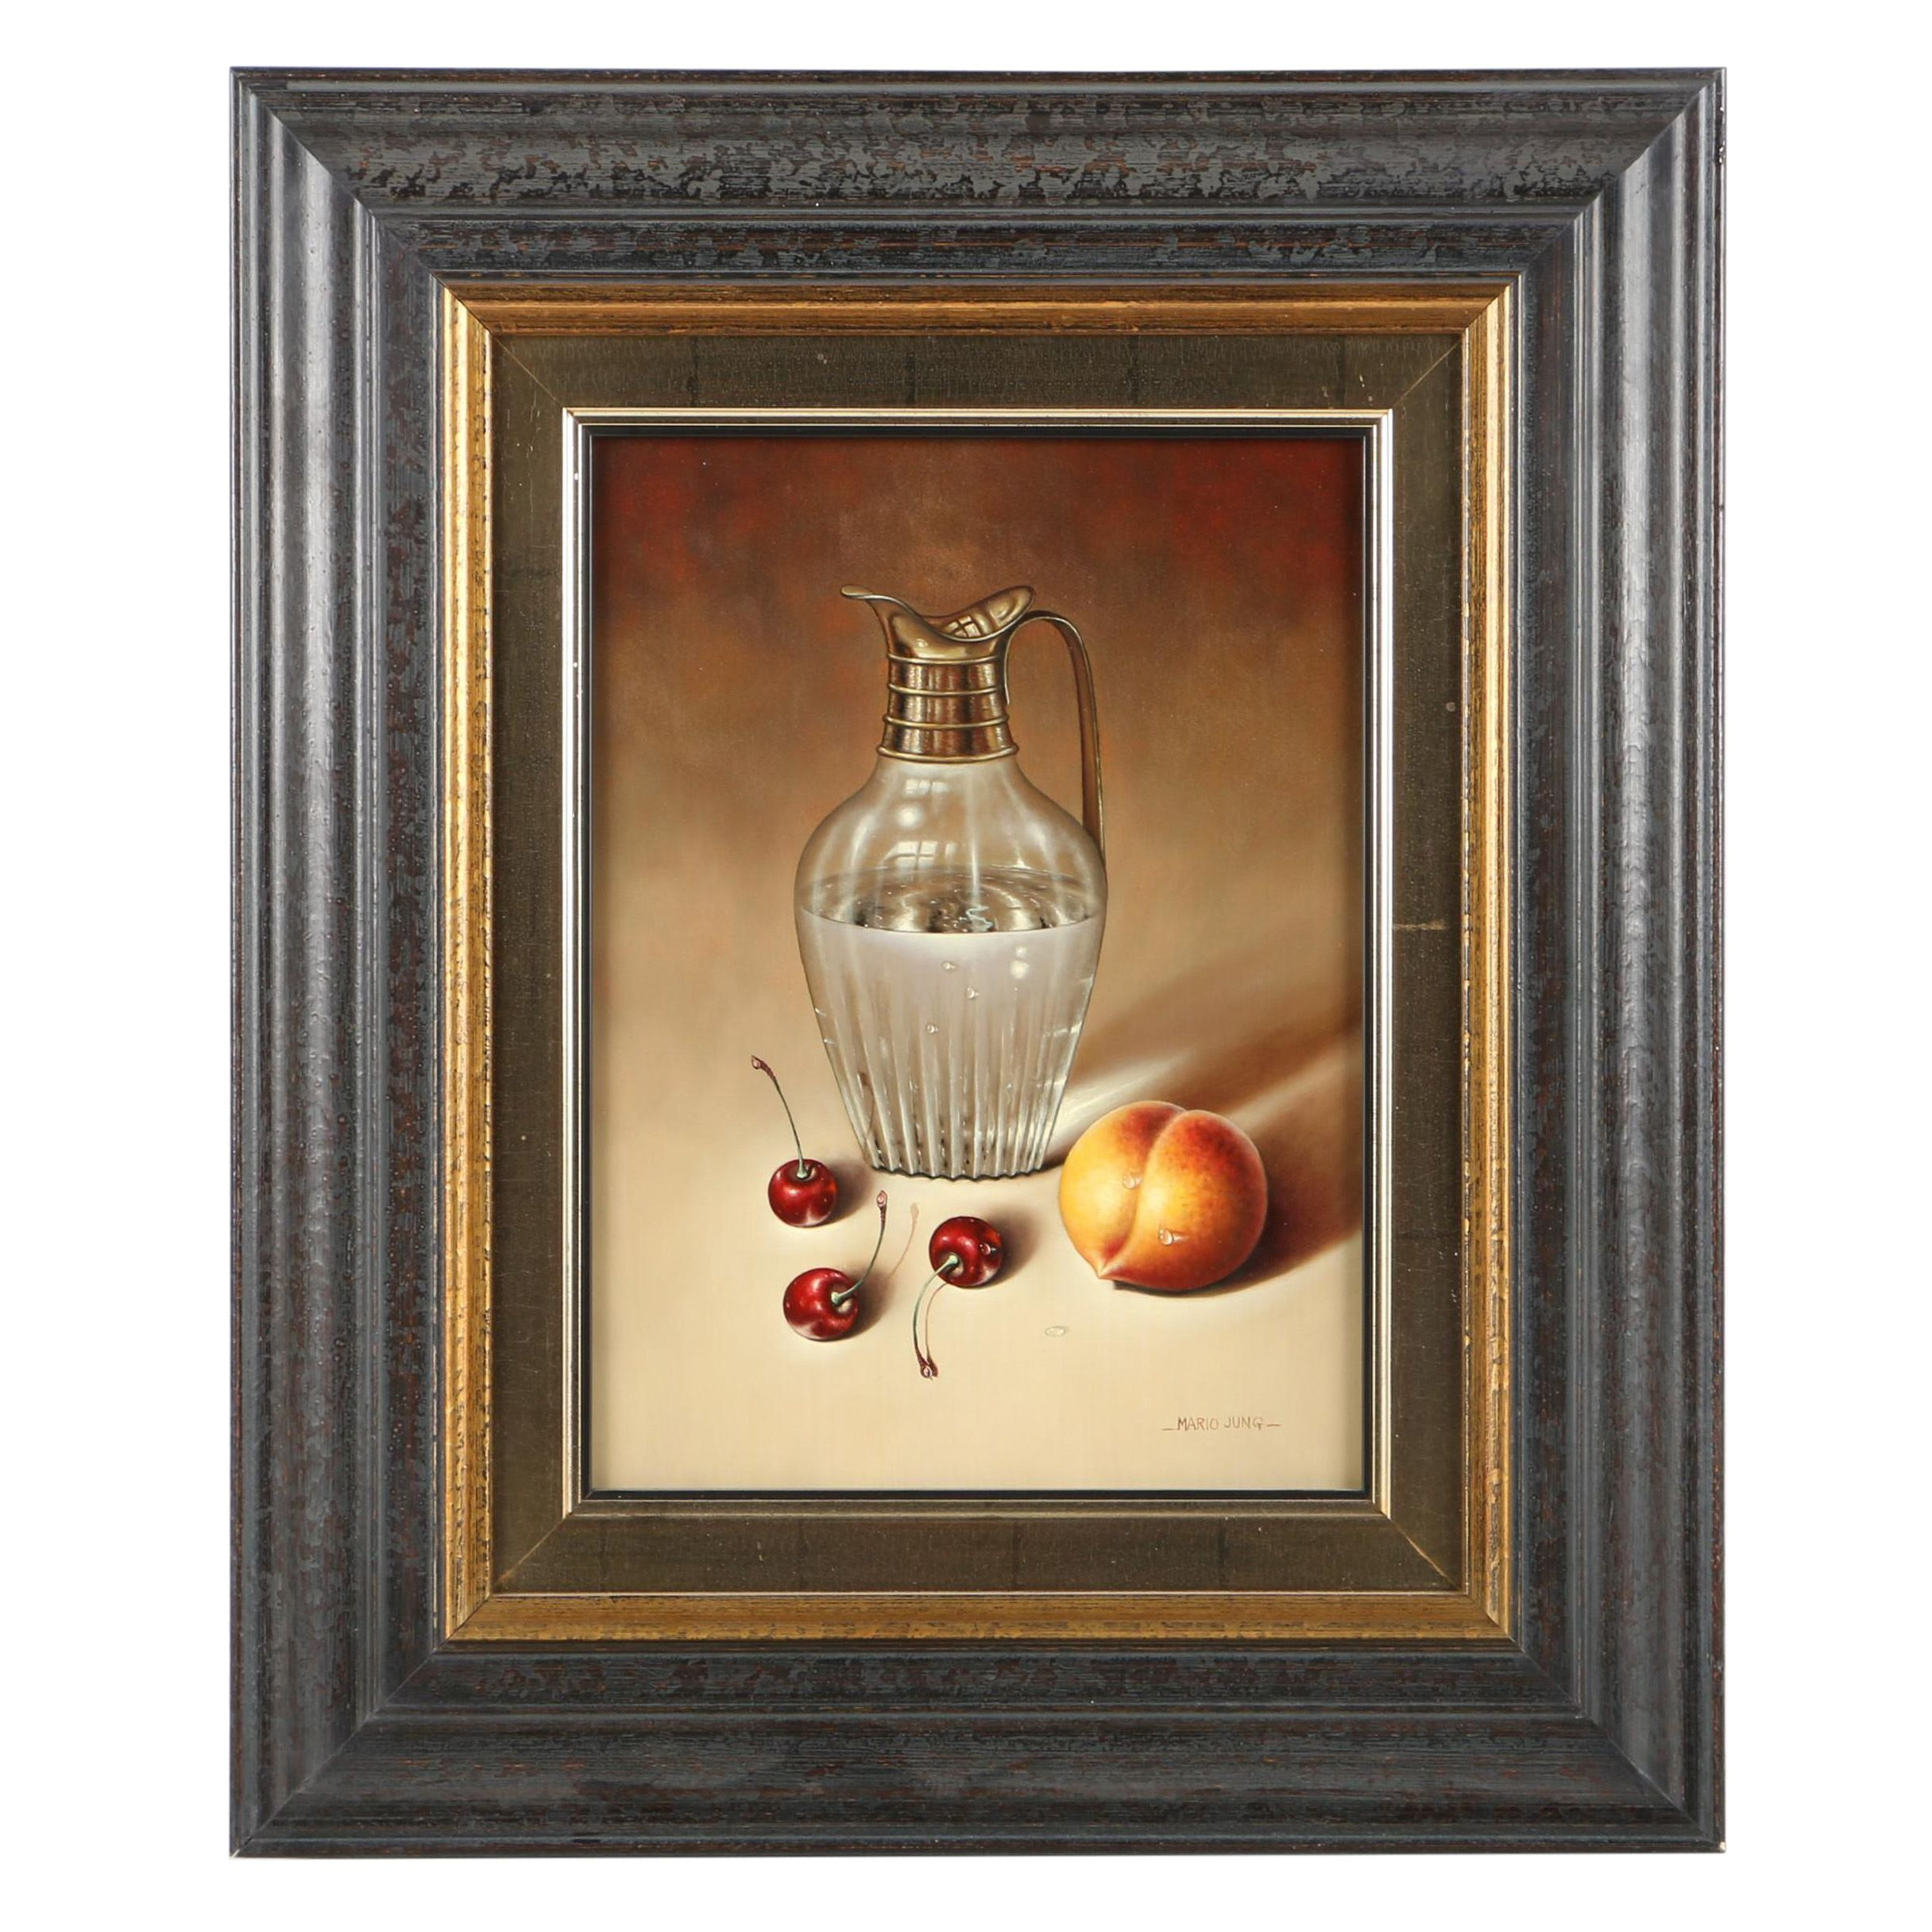 Mario Jung Oil Painting on Board of Fruit and a Crystal Pitcher